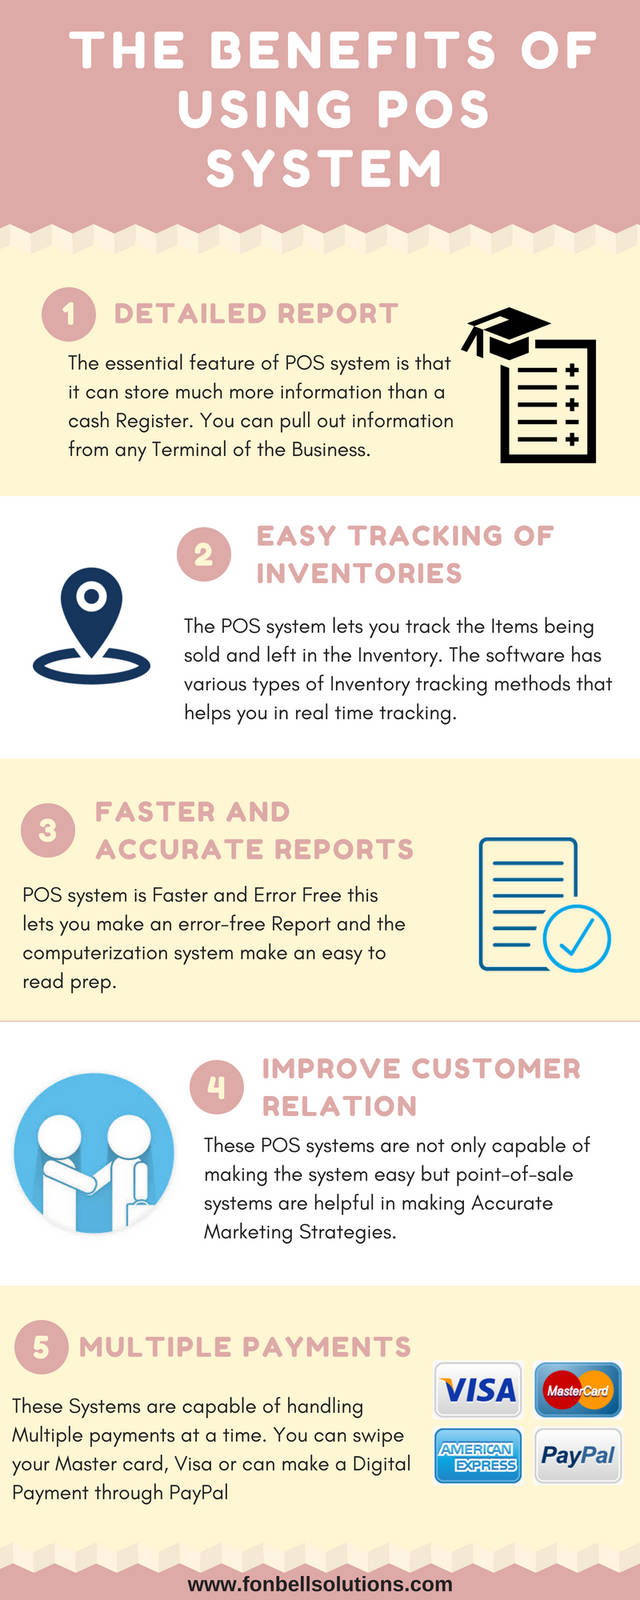 The benefits of using pos system